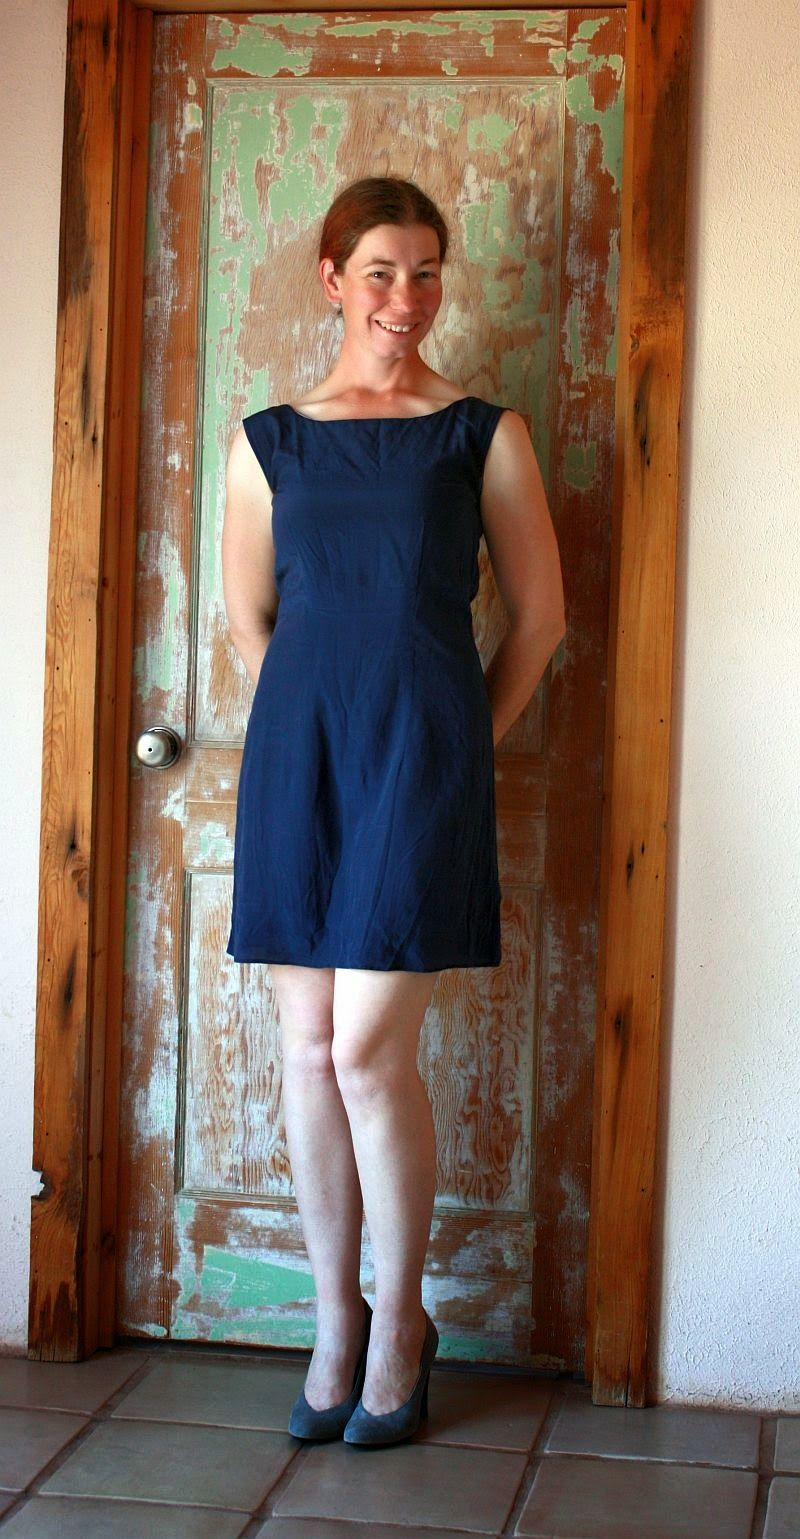 Sew long, Cowgirl!: Licorice Dress by Colette Patterns and more ...